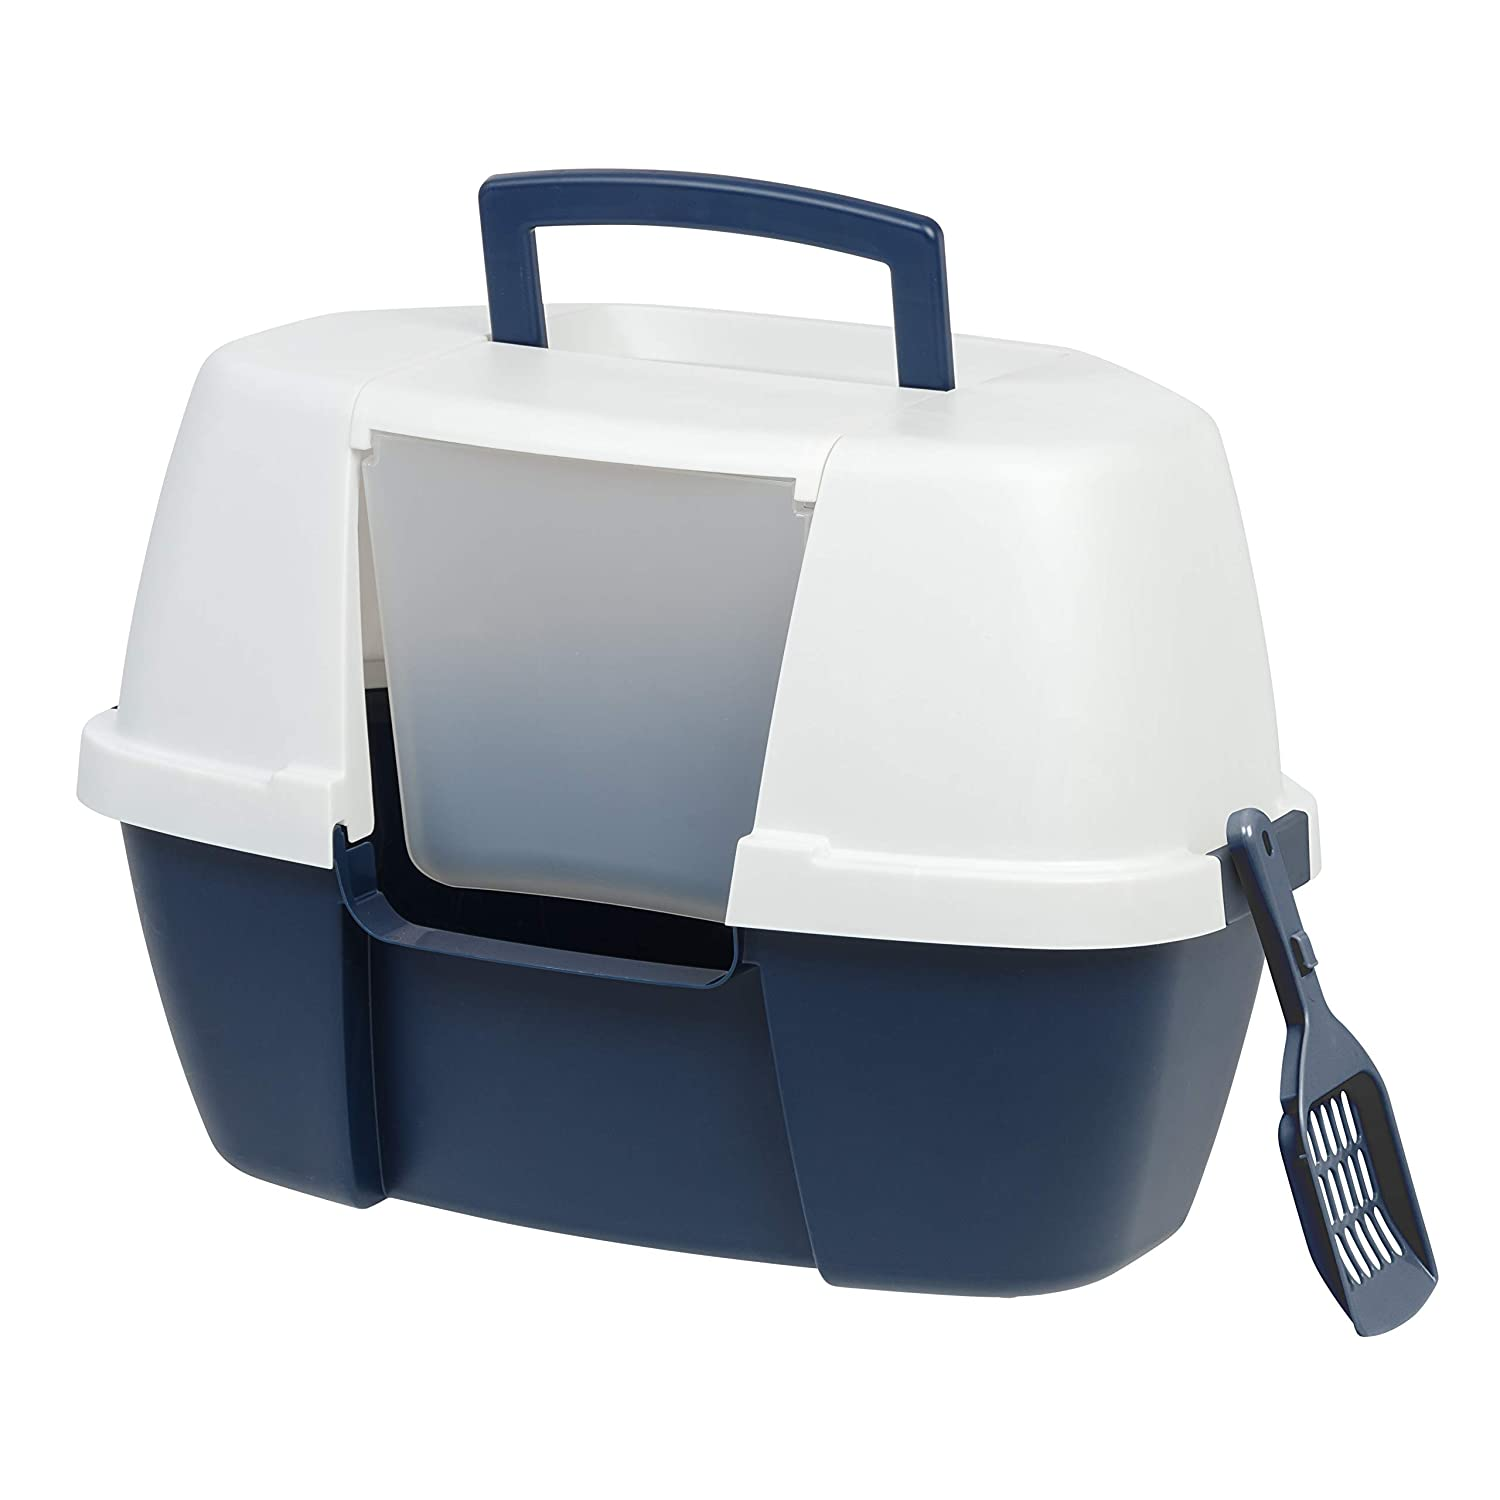 Navy Corner Navy Corner IRIS Large Hooded Corner Litter Box with Scoop, Navy